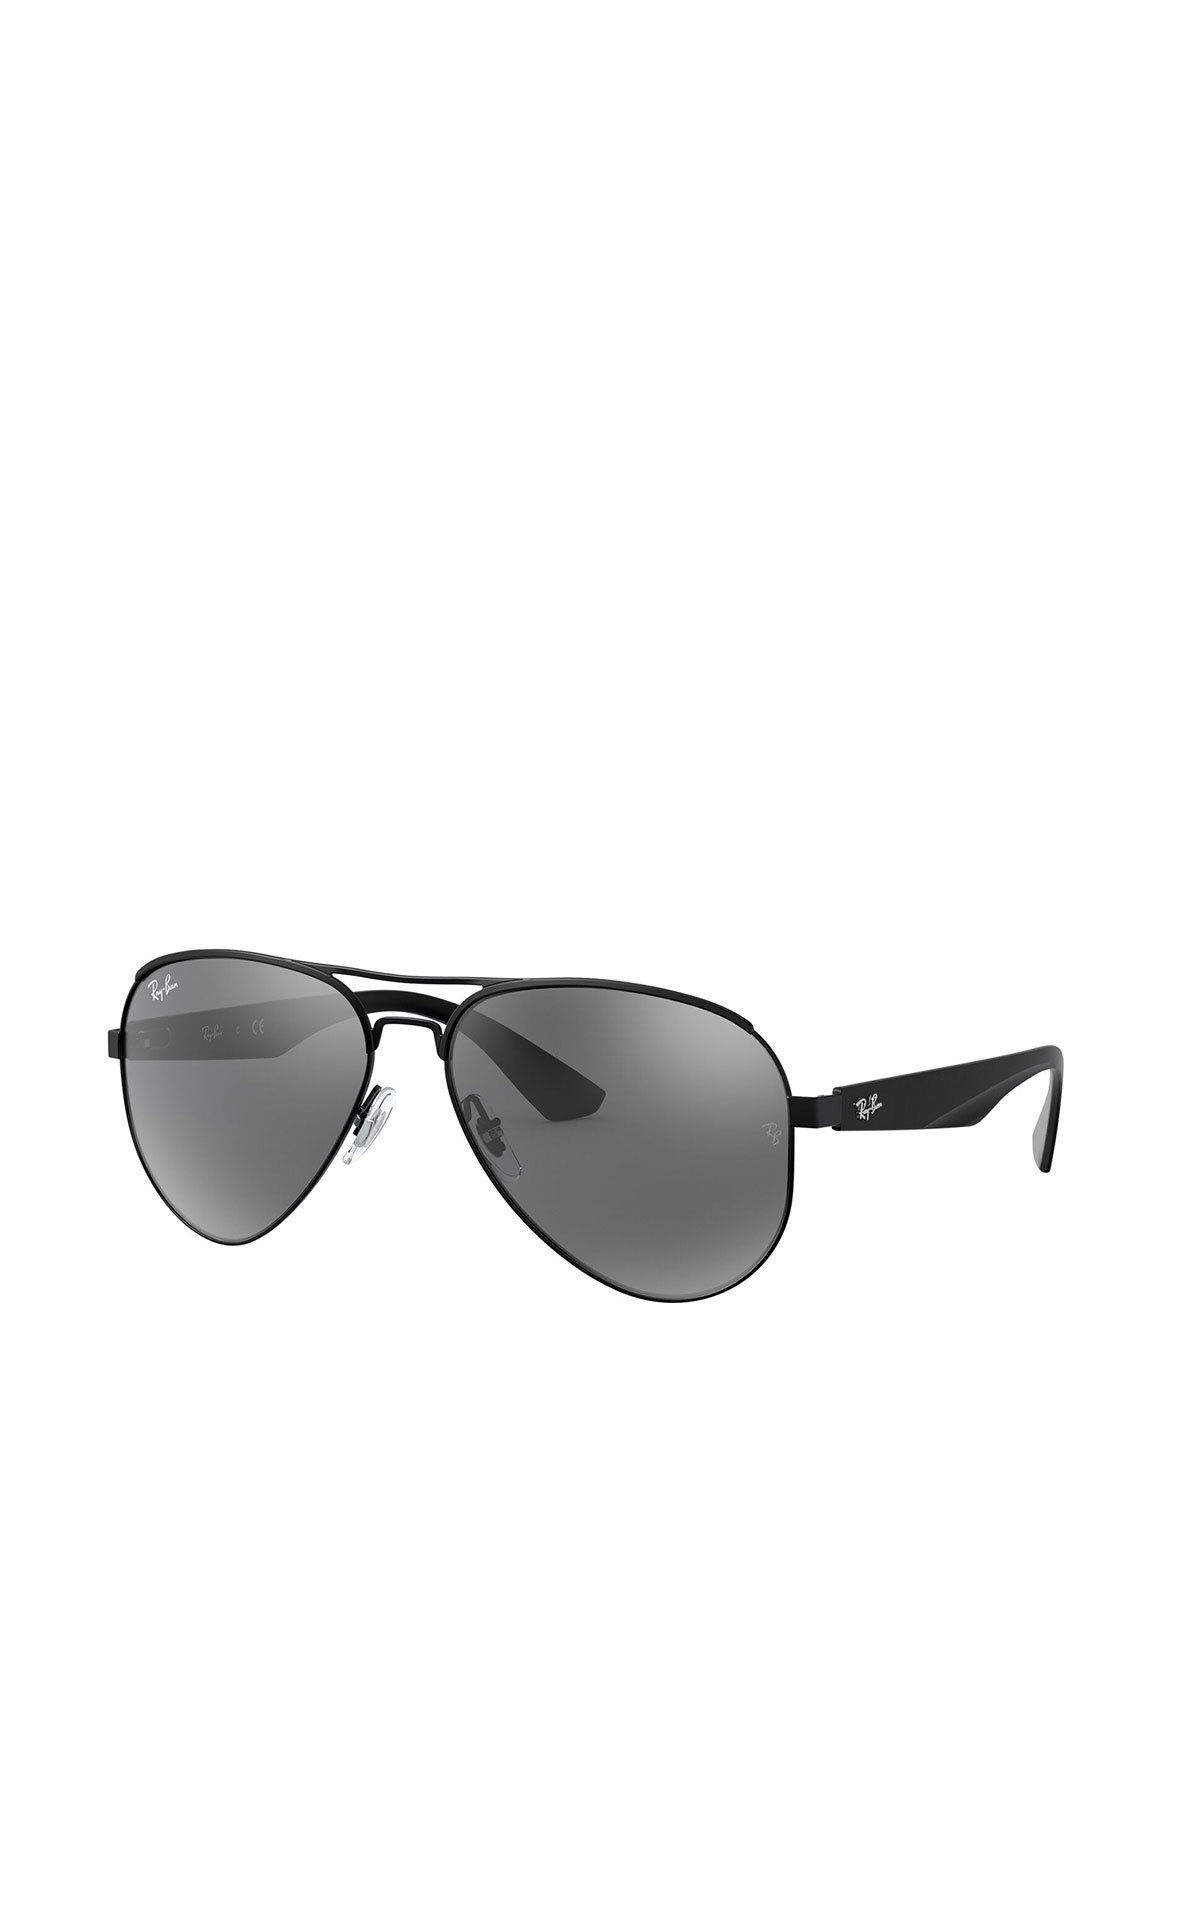 David Clulow Ray-Ban 0RB3523 from Bicester Village